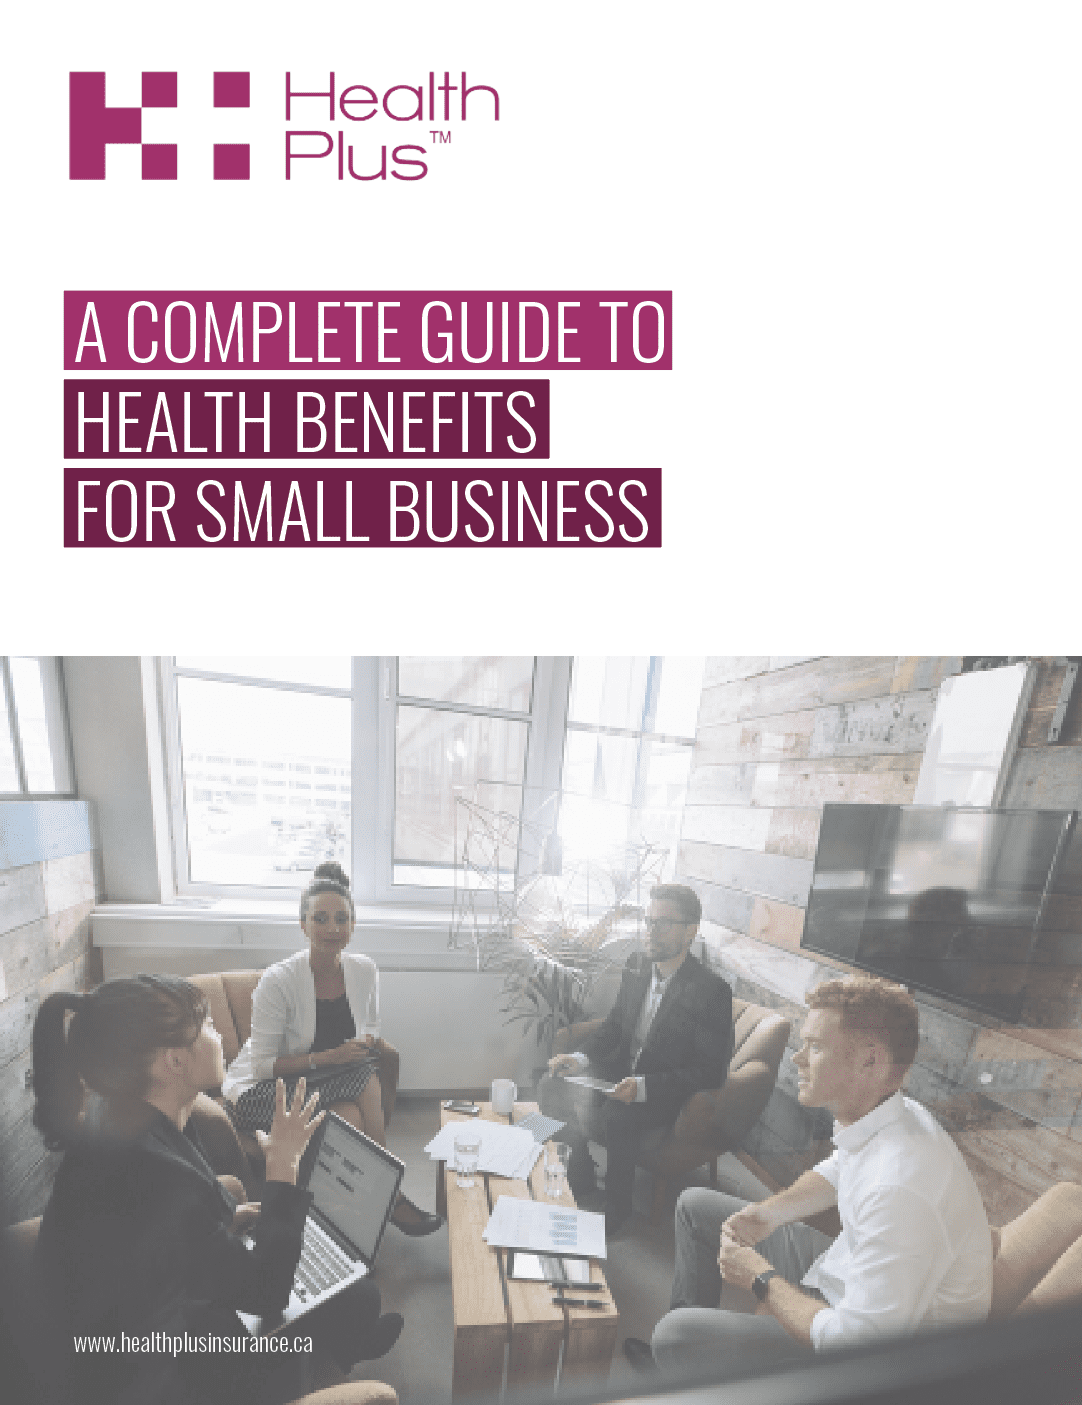 Health Benefits for Small Business